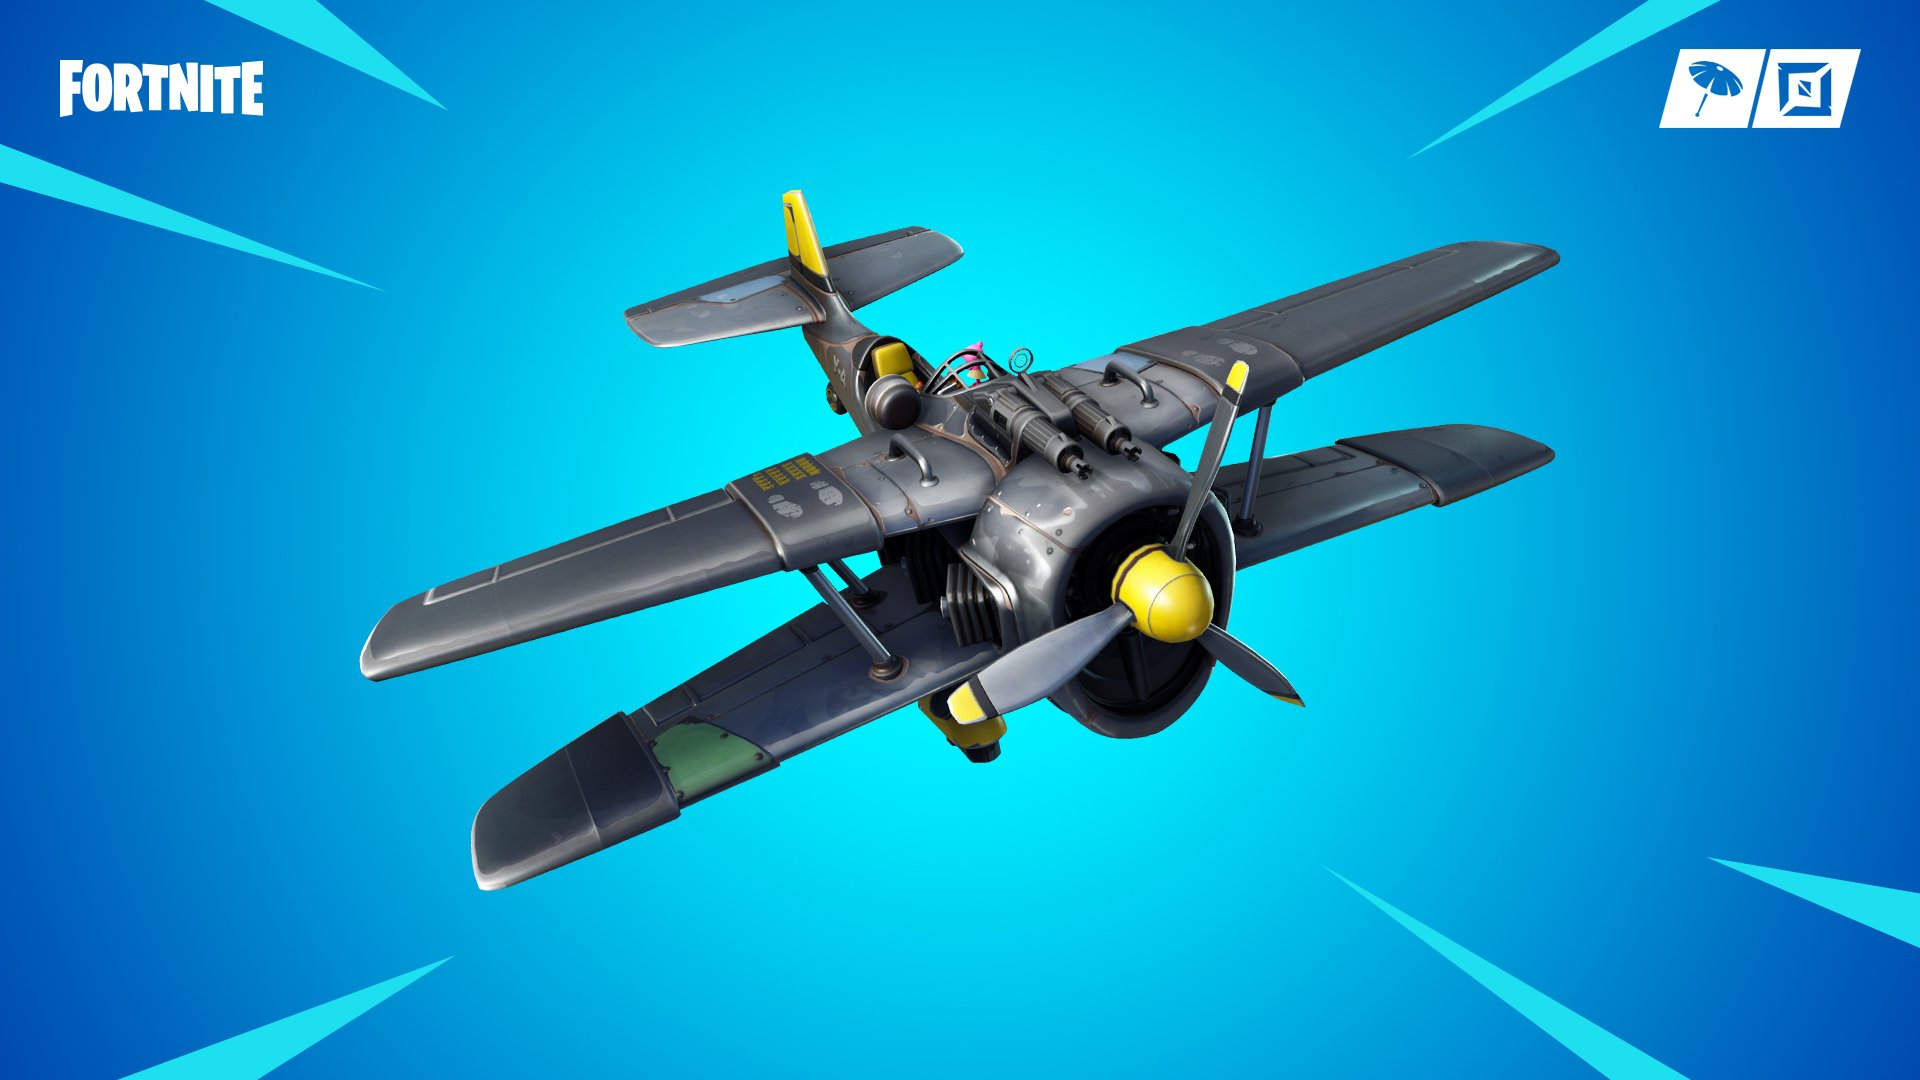 Fortnite Season 7 arrives with new Iceberg biome, Wraps and planes